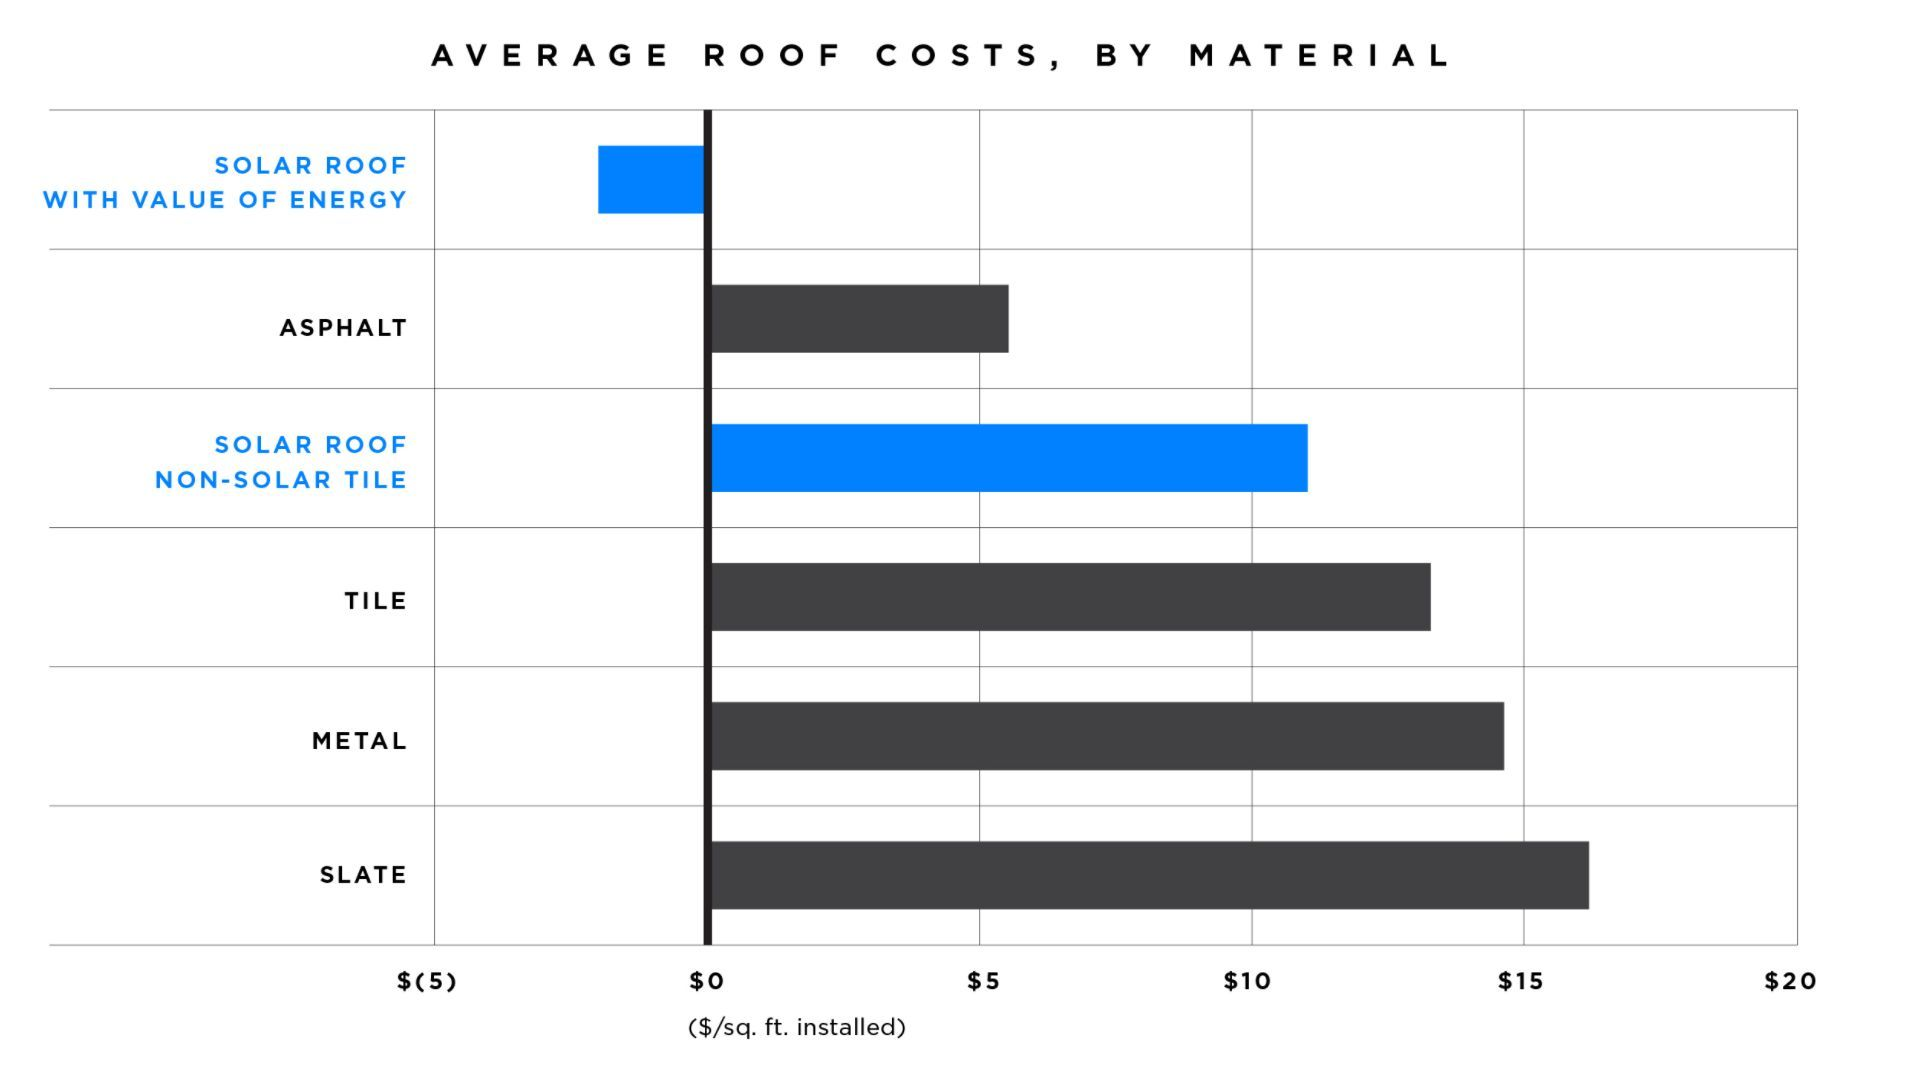 Average Roof Cost In The Us With Solar Cost Included Tesla Solar Roof Solar Roof Roof Cost